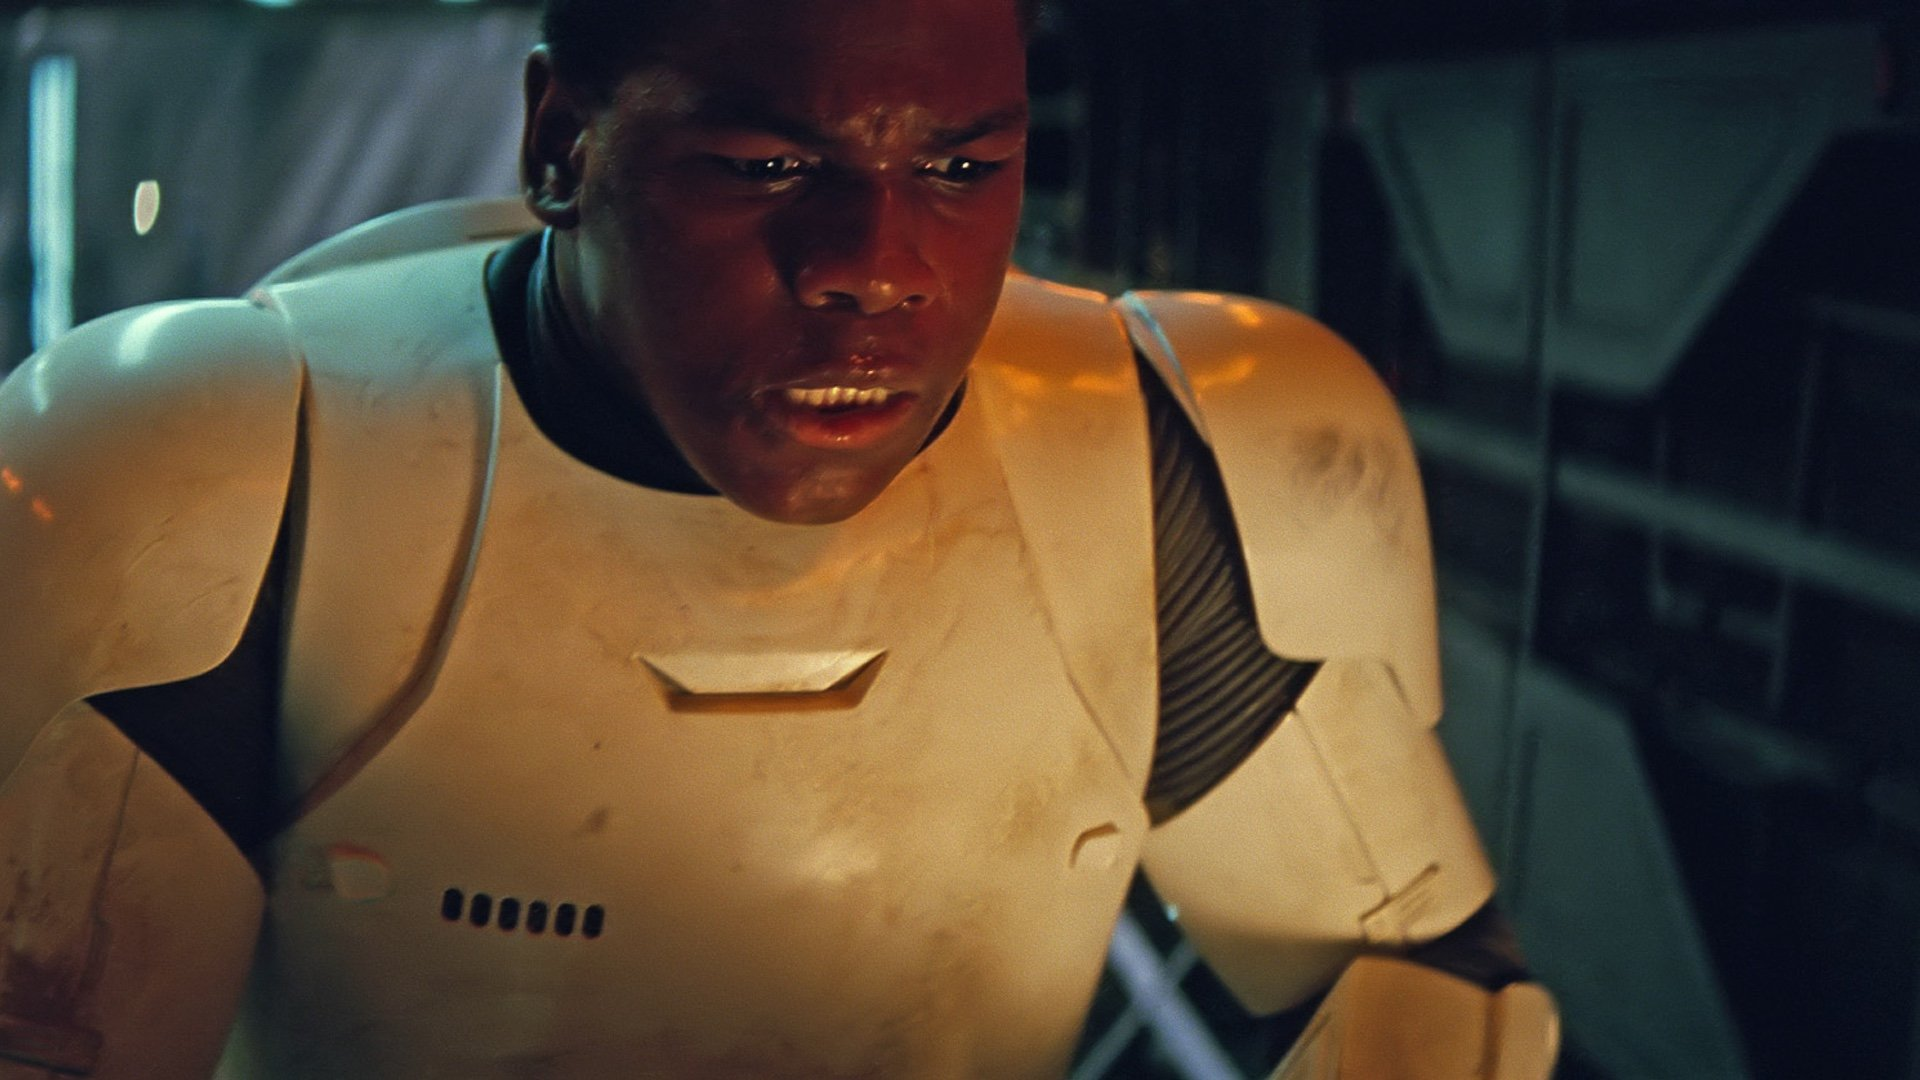 Star Wars: The Rise of Skywalker: John Boyega dubbioso sul futuro di Finn